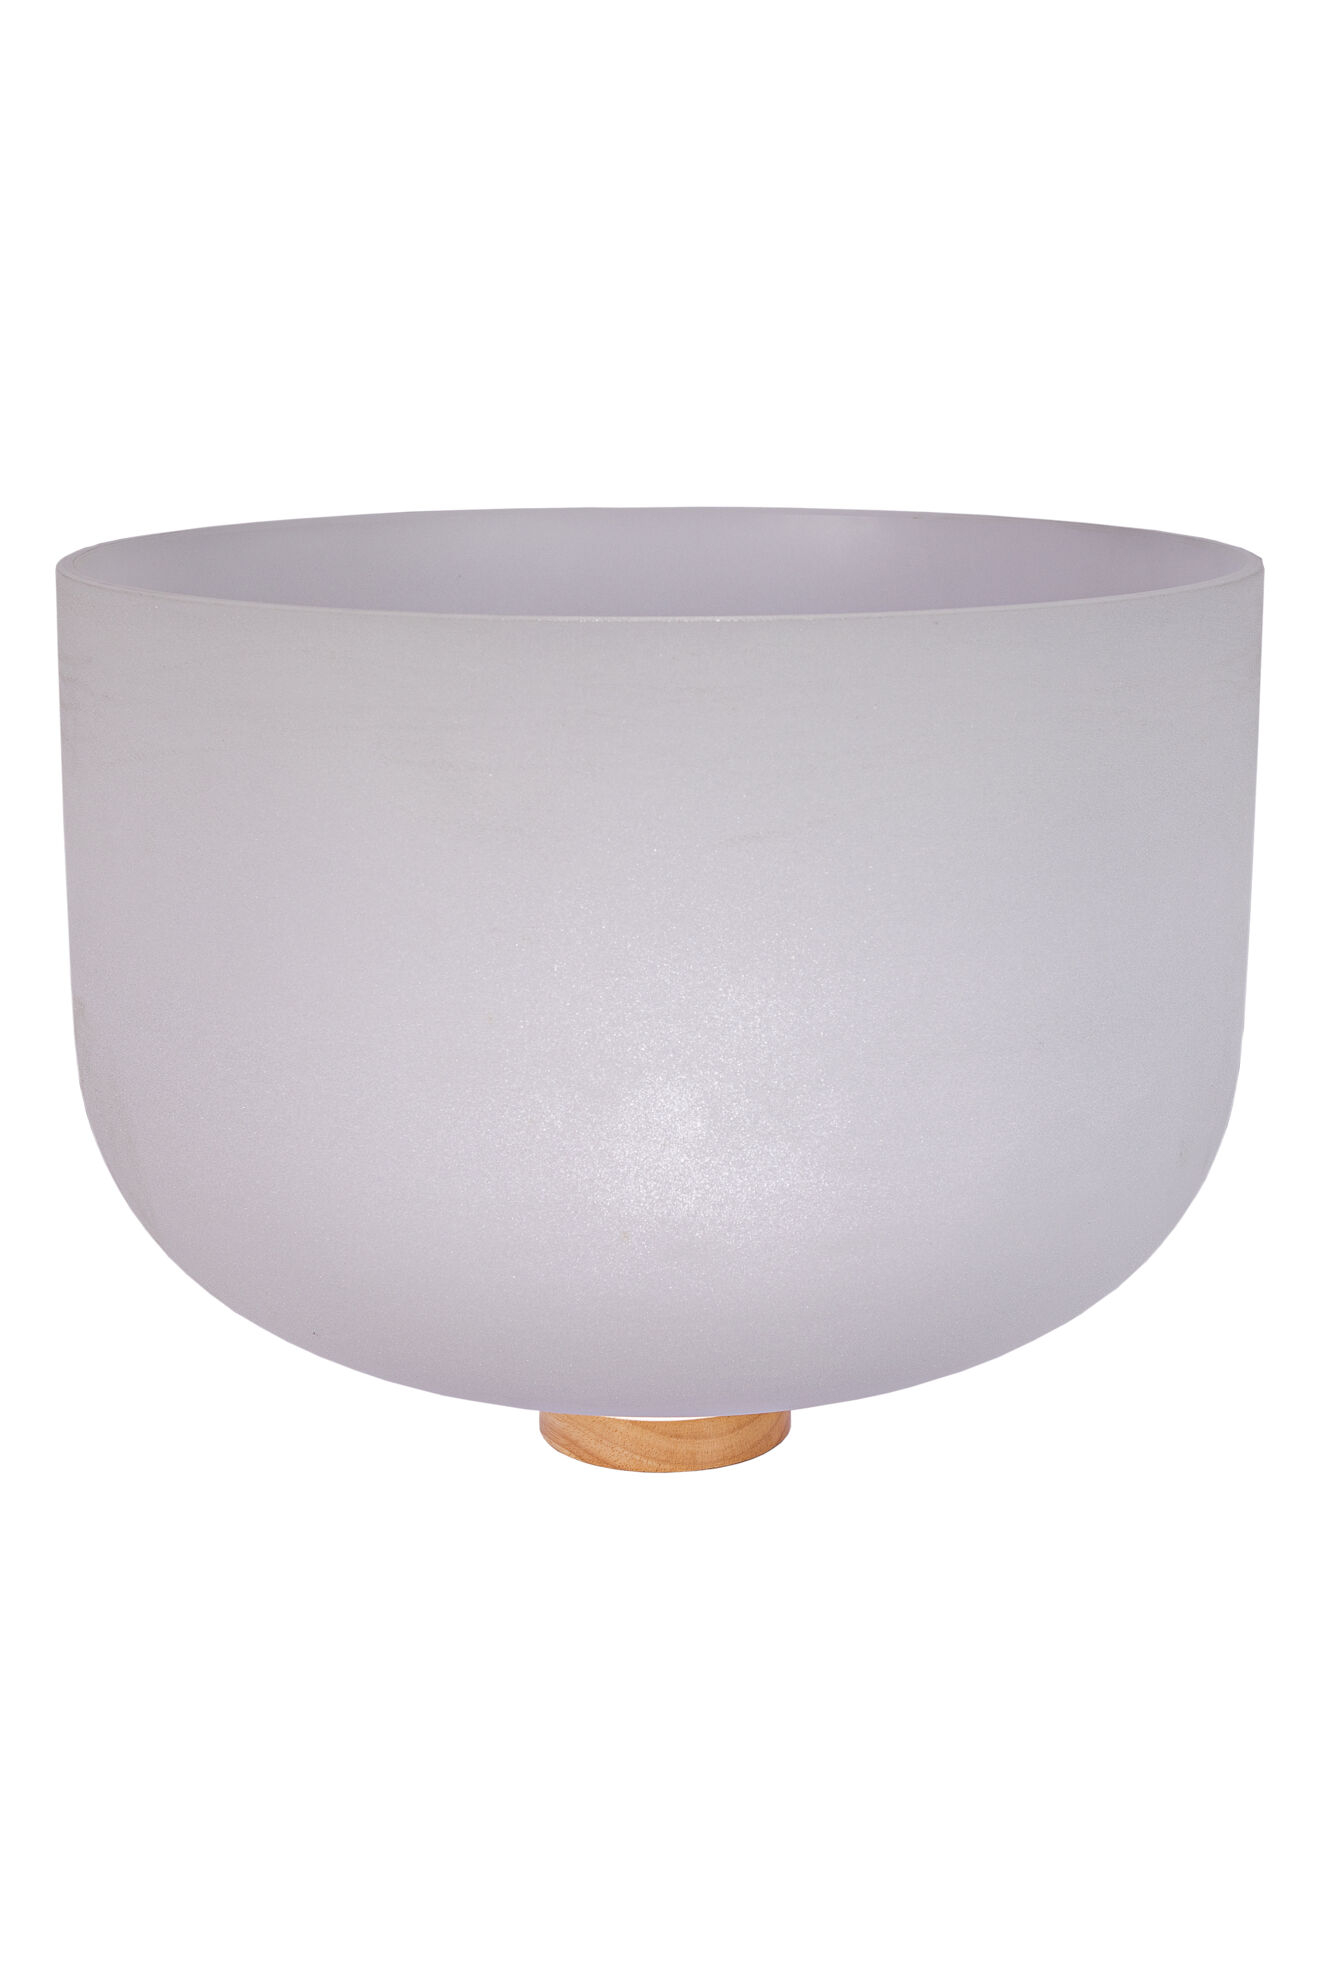 20 Frosted Quartz Singing Bowl Note F